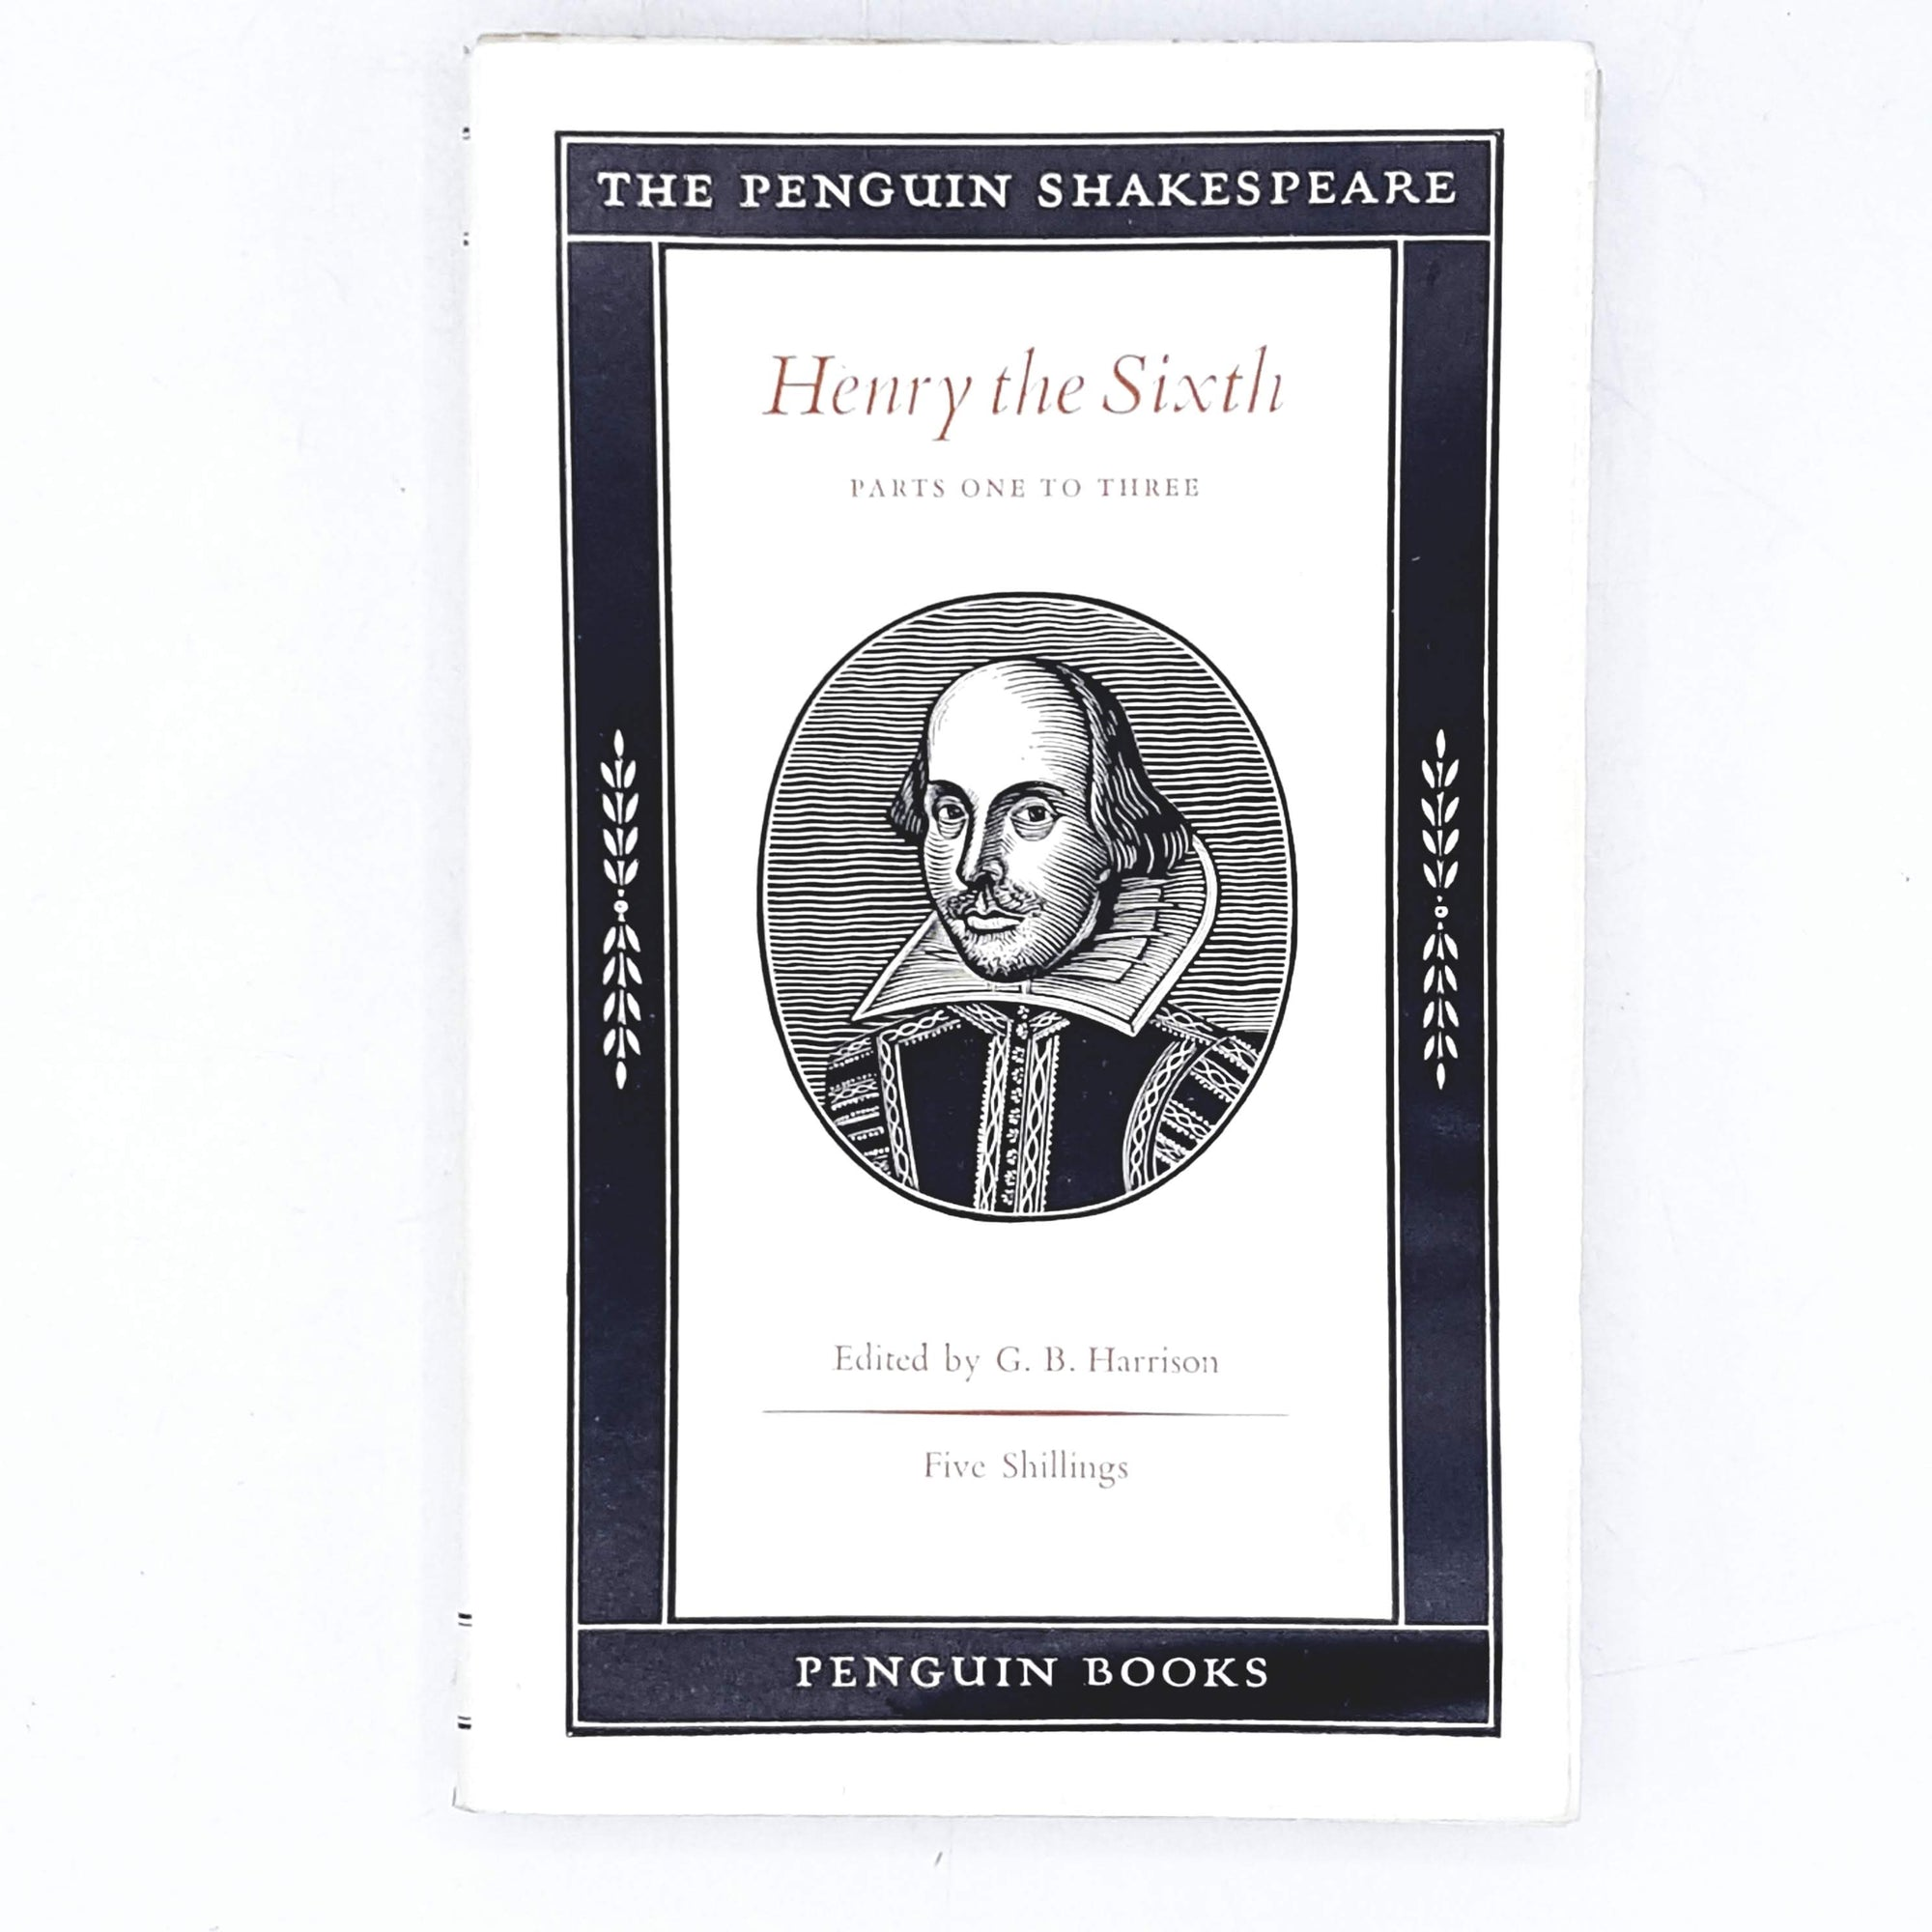 First Edition Penguin William Shakespeare's Henry VI 1959